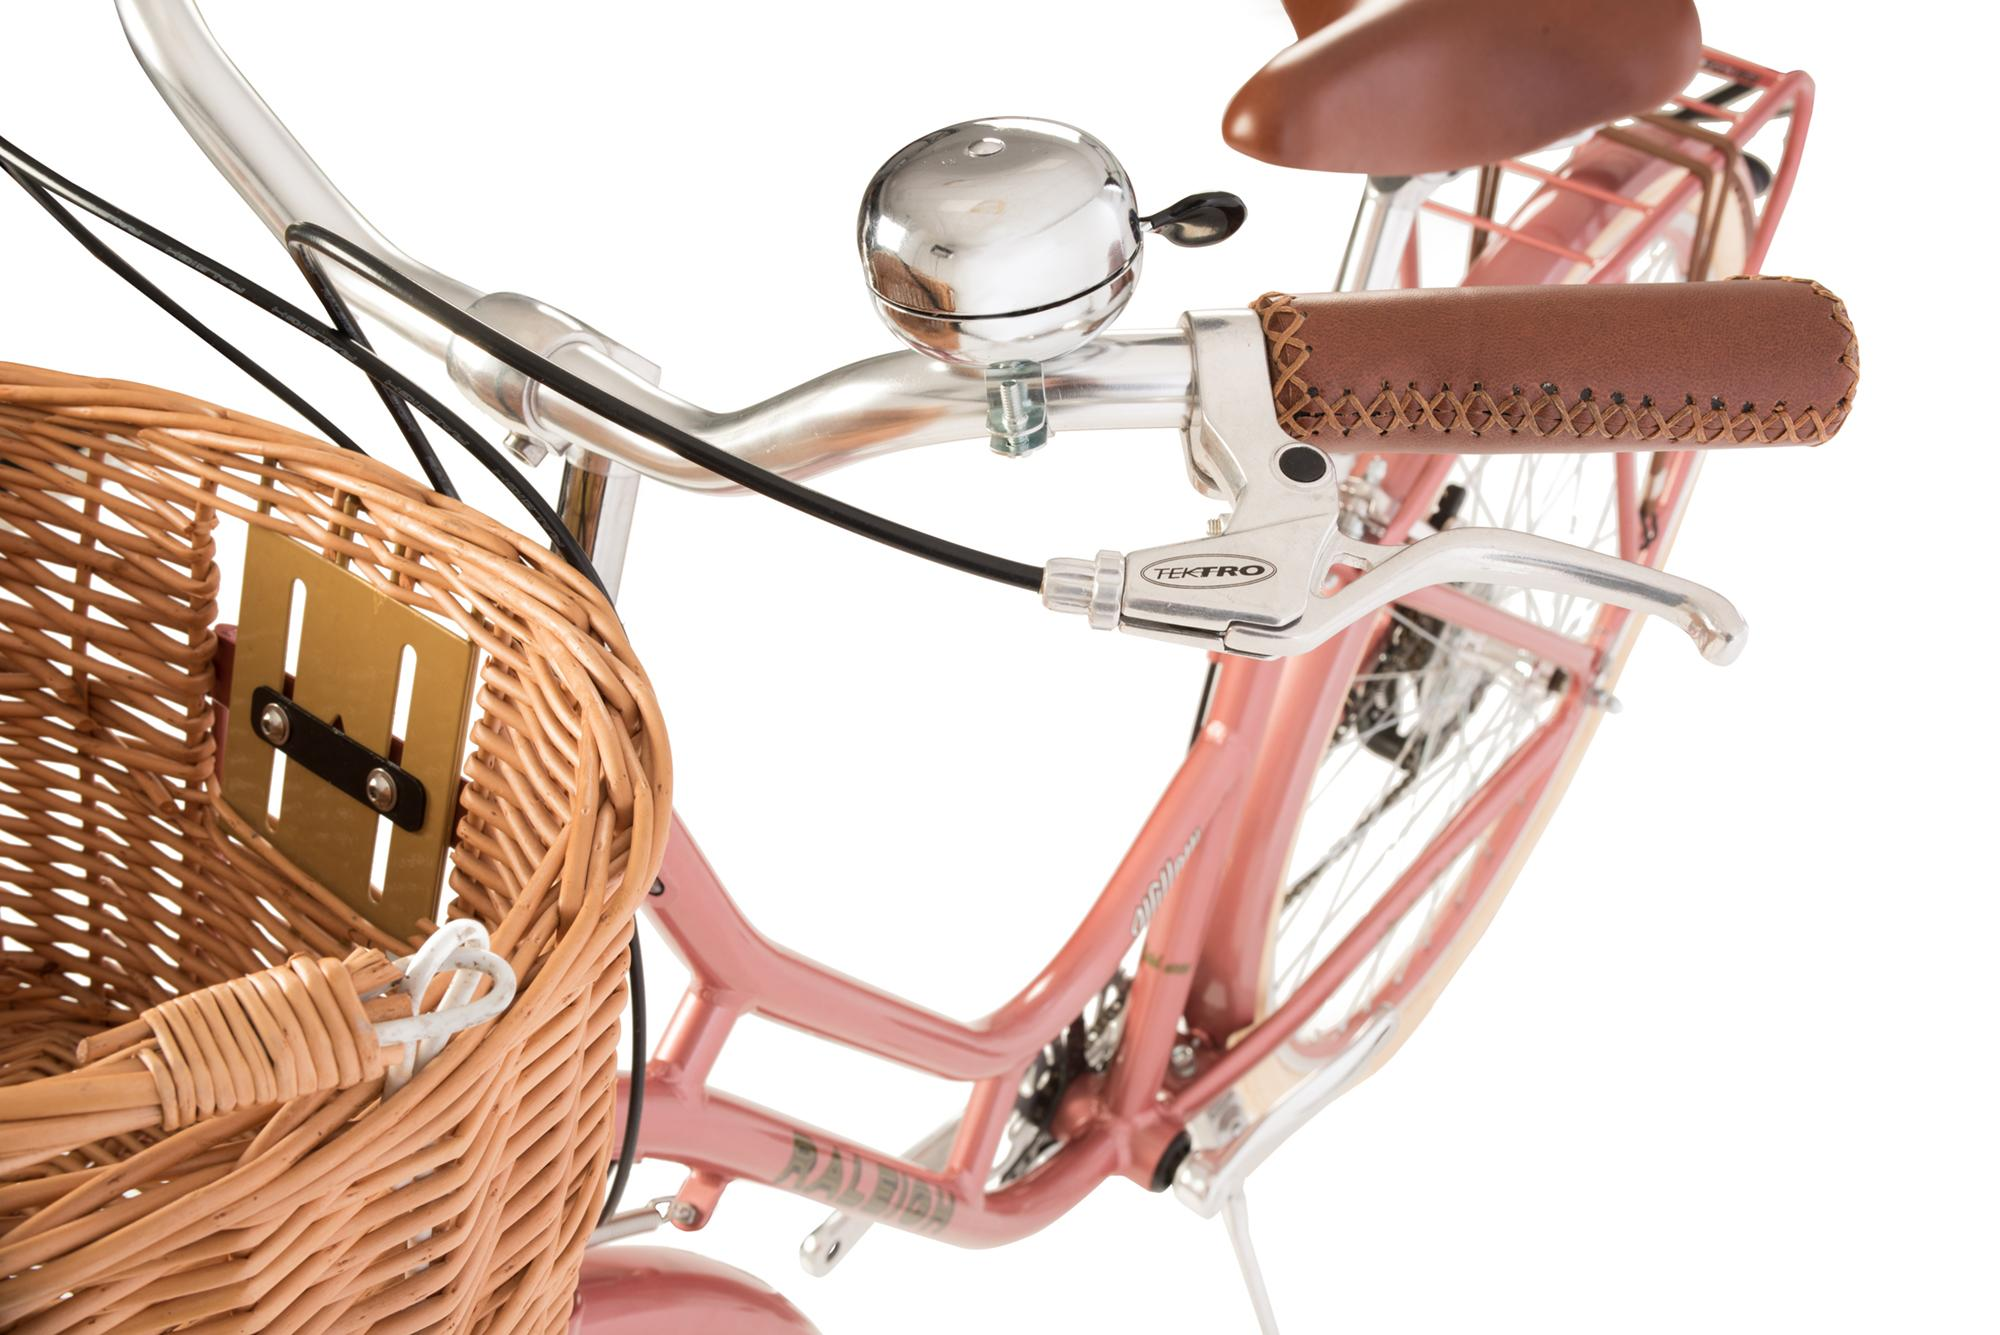 Bell and handlebars on the Raleigh Willow classic ladies low step bike